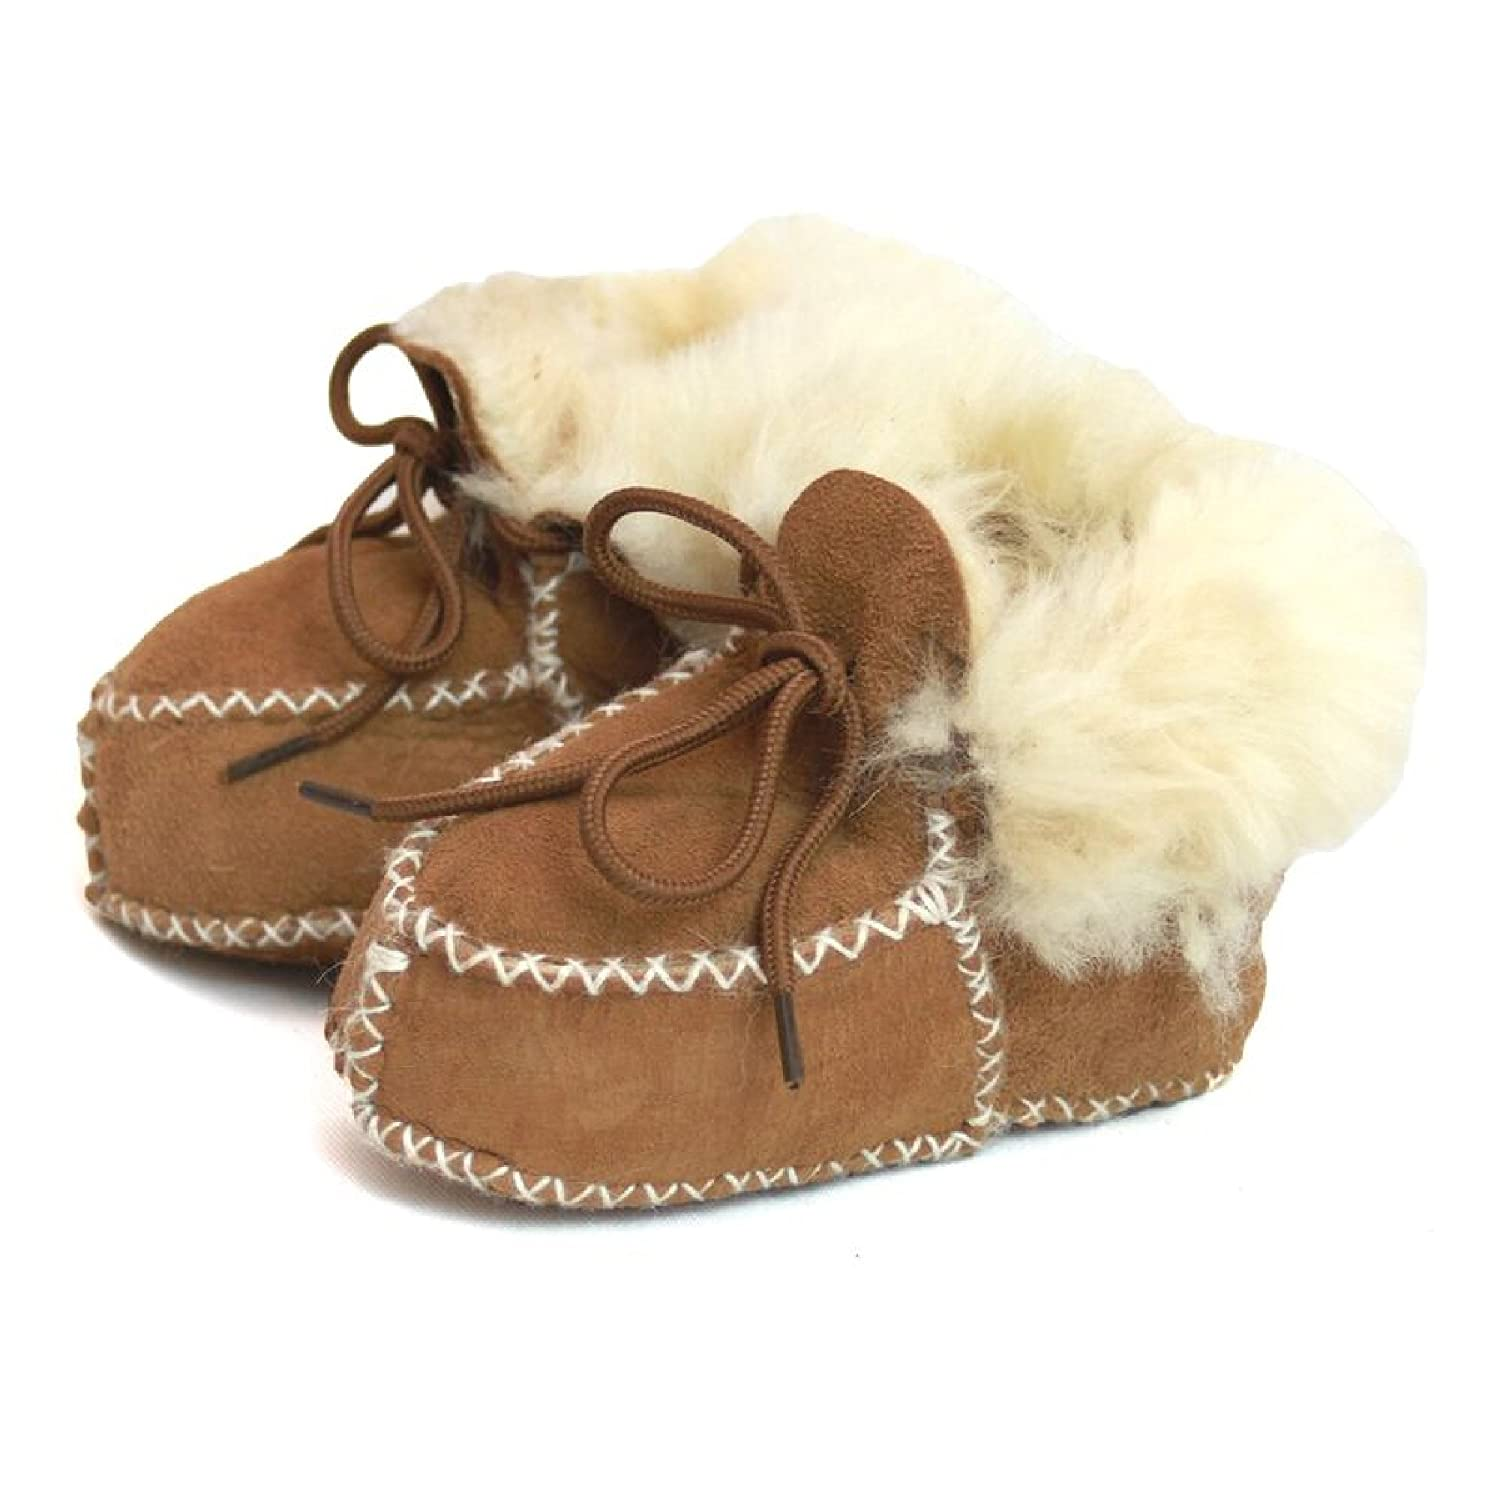 Eastern Counties Leather Baby Sheepskin Lace Tie Booties